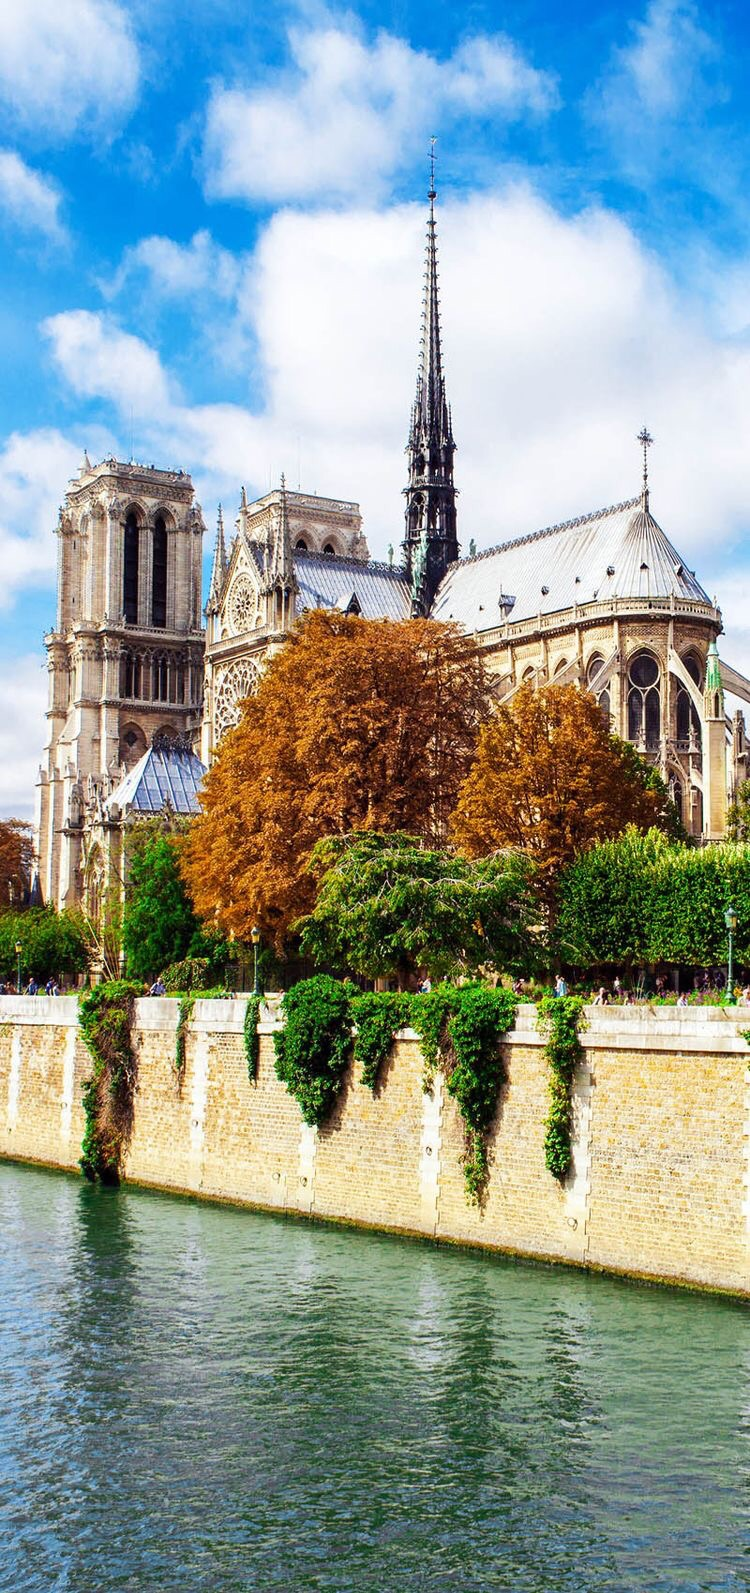 See Notre Dame and other architecture to cross off my list. {Image Source: Andrey_Kuzmin via Shutterstock}